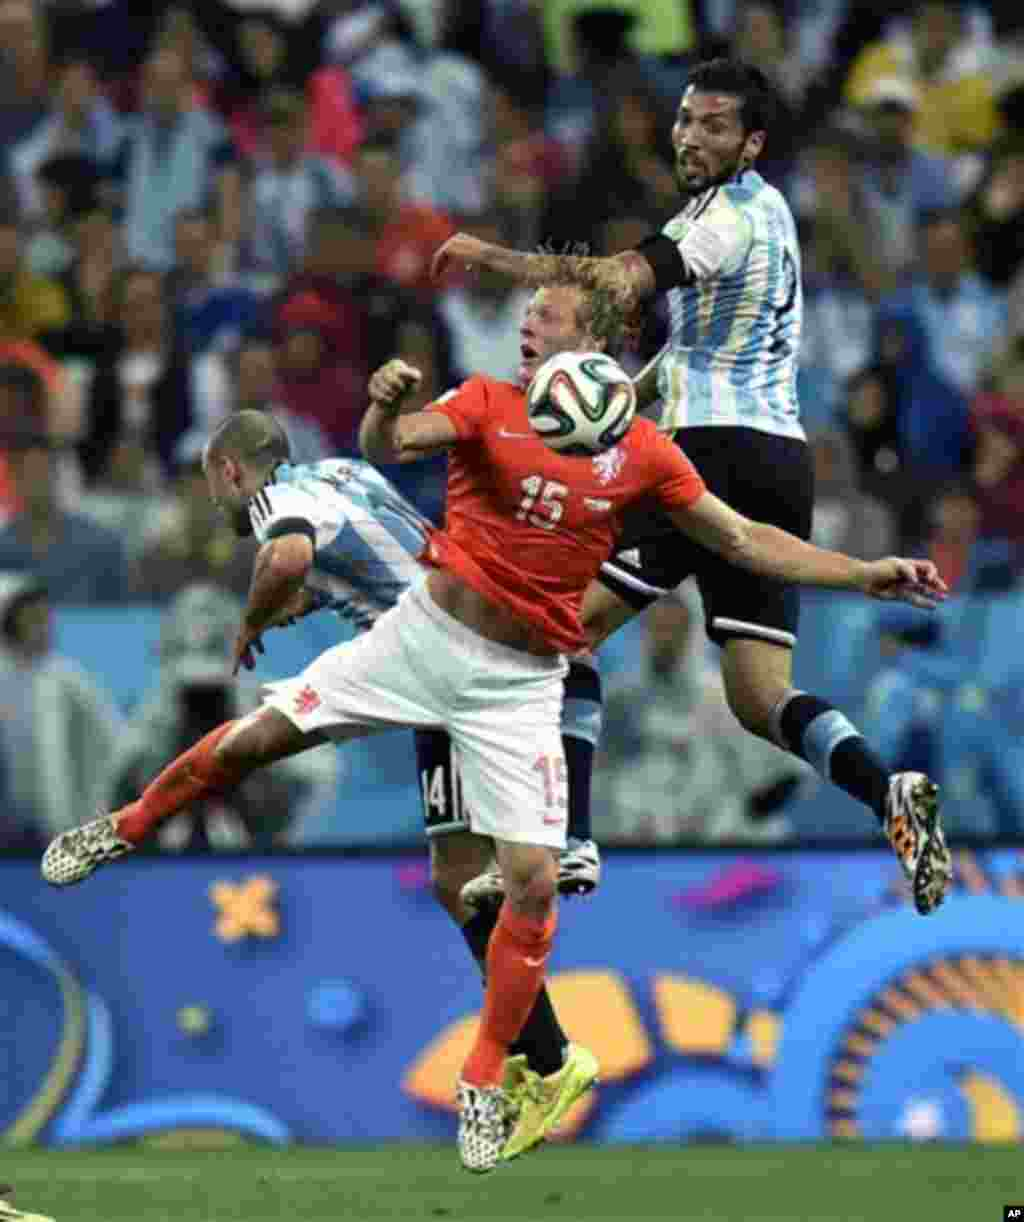 Netherlands' Dirk Kuyt is challenged by Argentina's Javier Mascherano, left, and Ezequiel Garay during the World Cup semifinal soccer match between the Netherlands and Argentina at the Itaquerao Stadium in Sao Paulo Brazil, Wednesday, July 9, 2014. (AP Ph